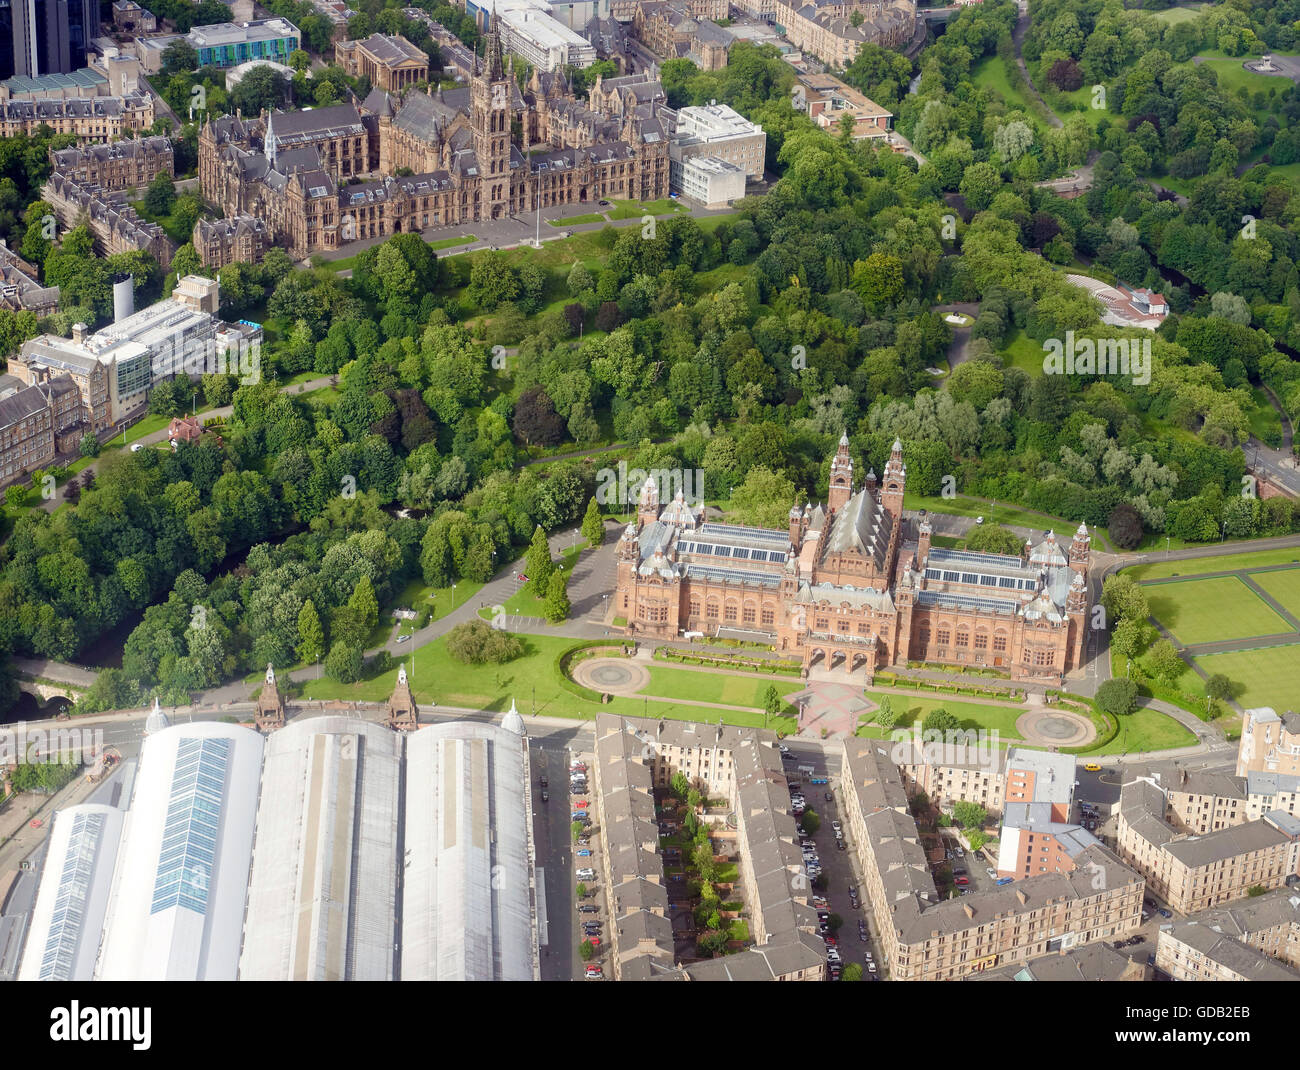 An aerial view of Kelvin Hall Glasgow University, Central Scotland - Stock Image